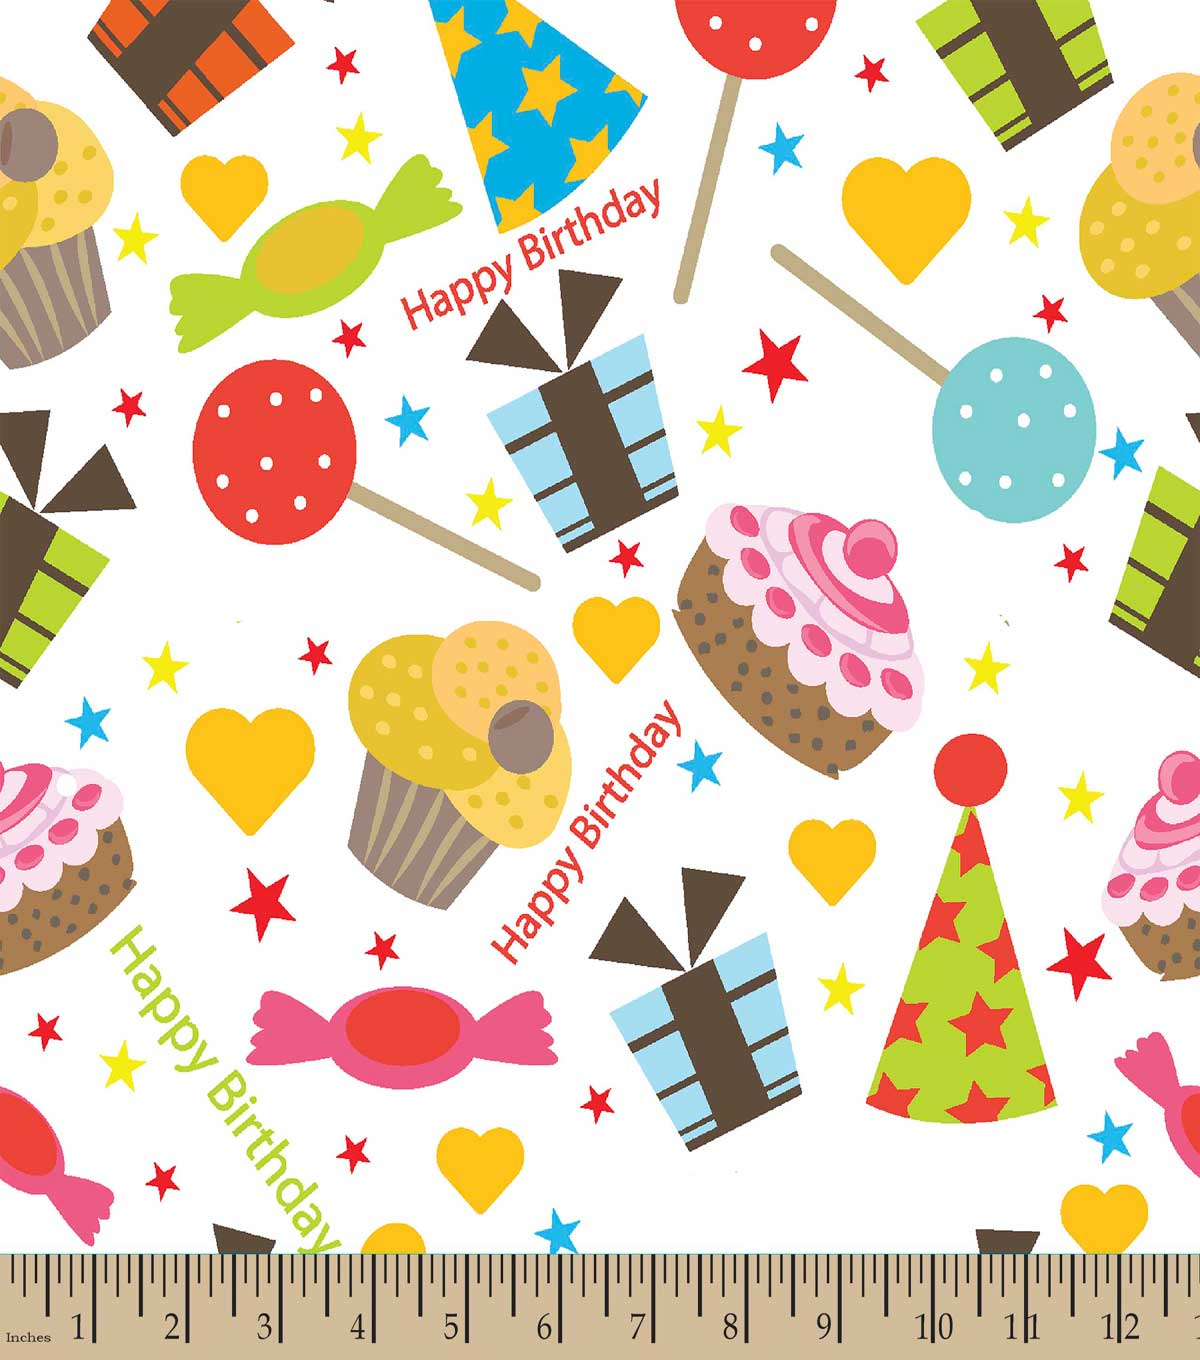 Happy Birthday Treats Print Fabric